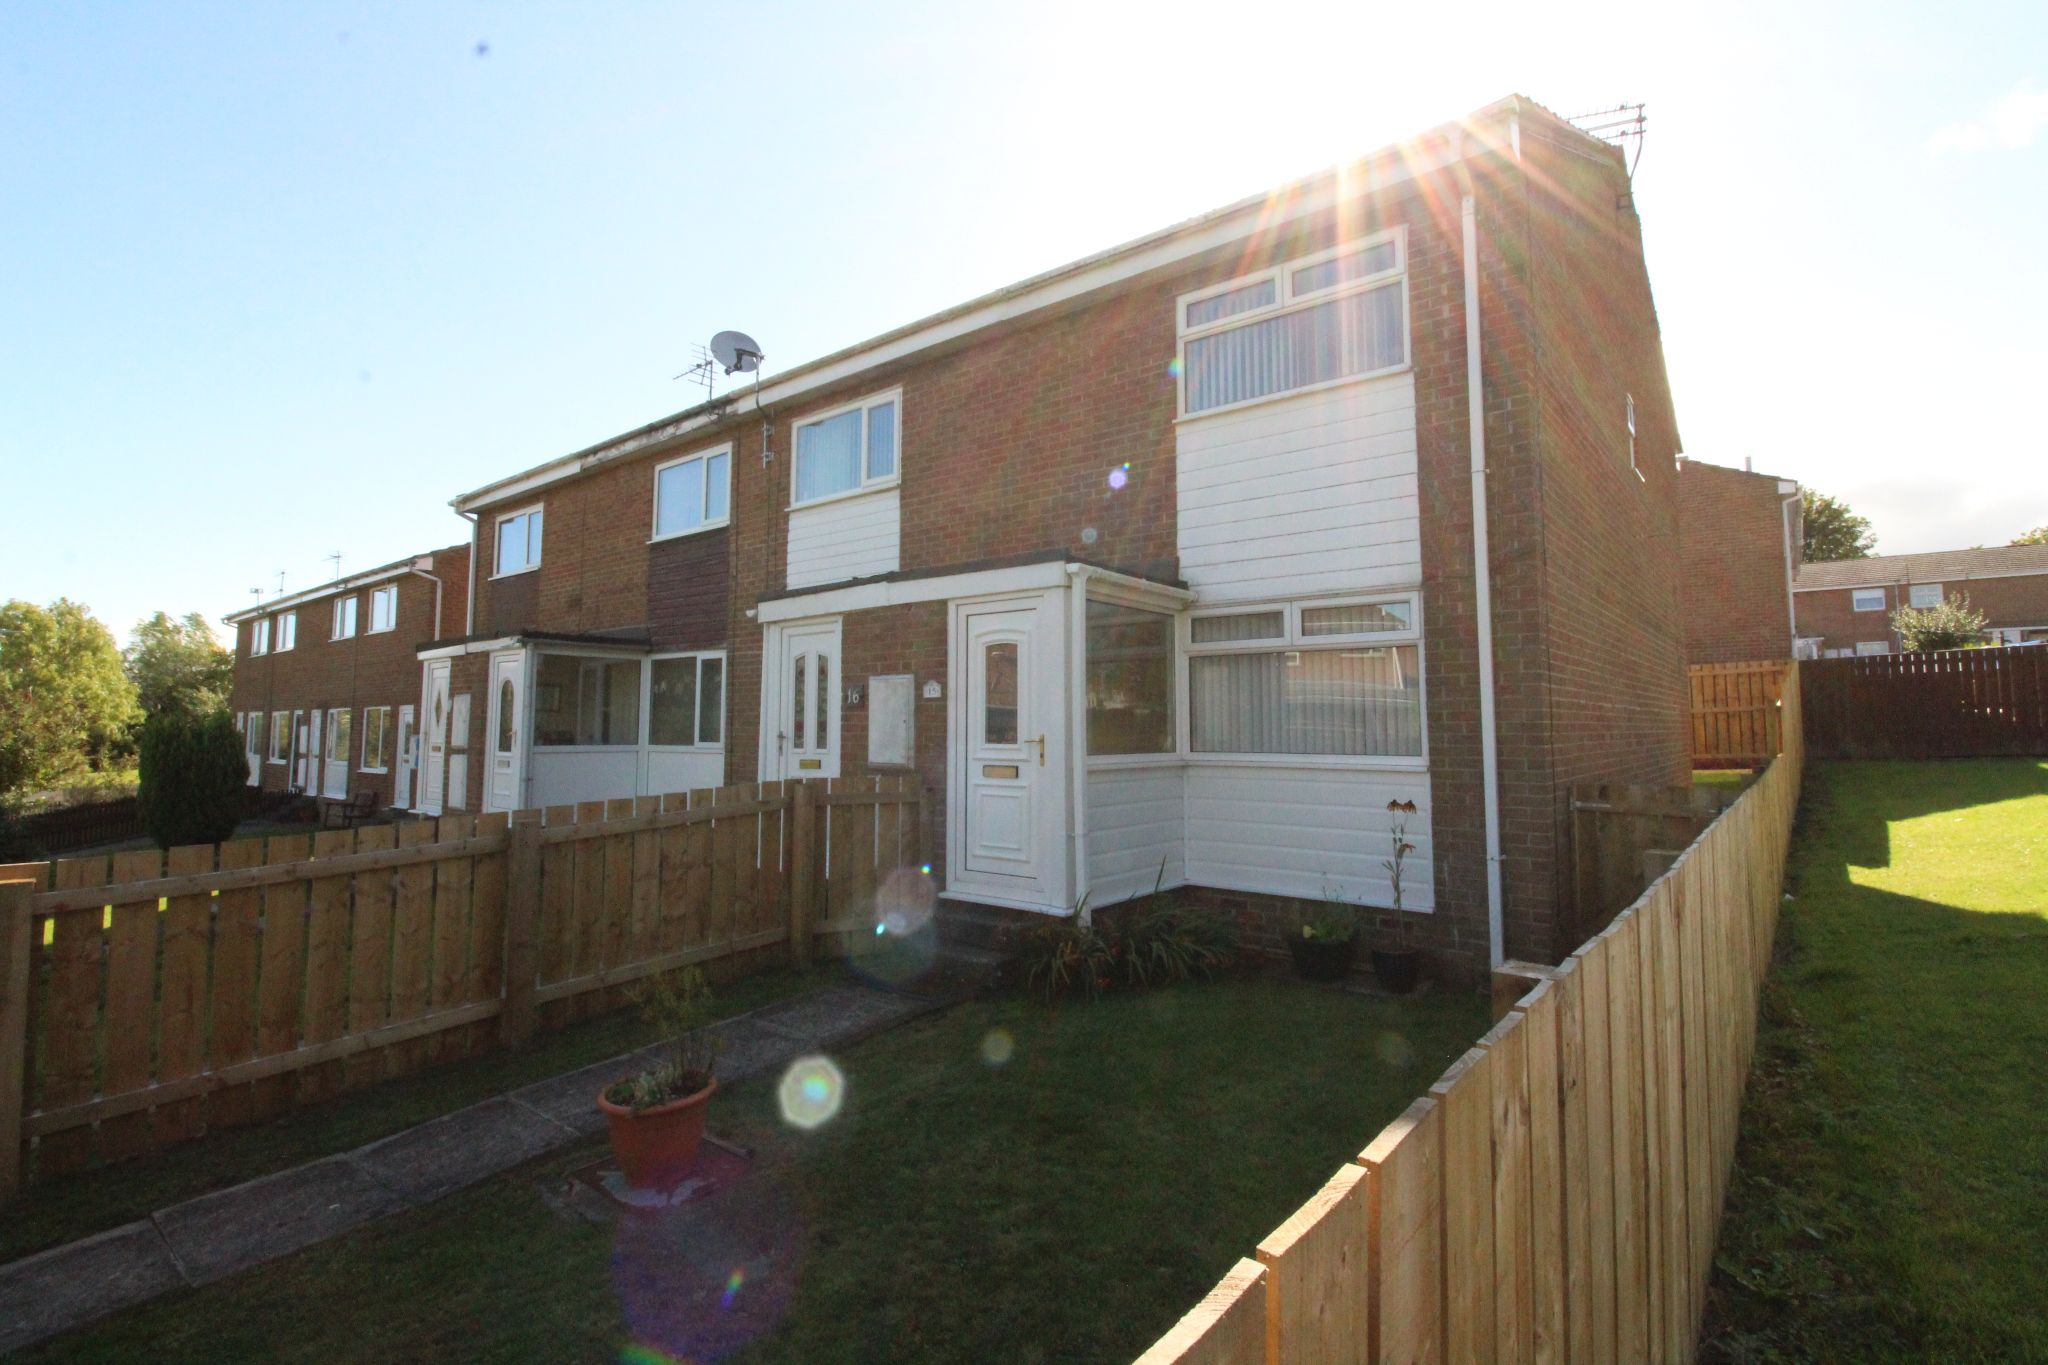 2 bedroom end terraced house Let Agreed in Crook - Photograph 1.